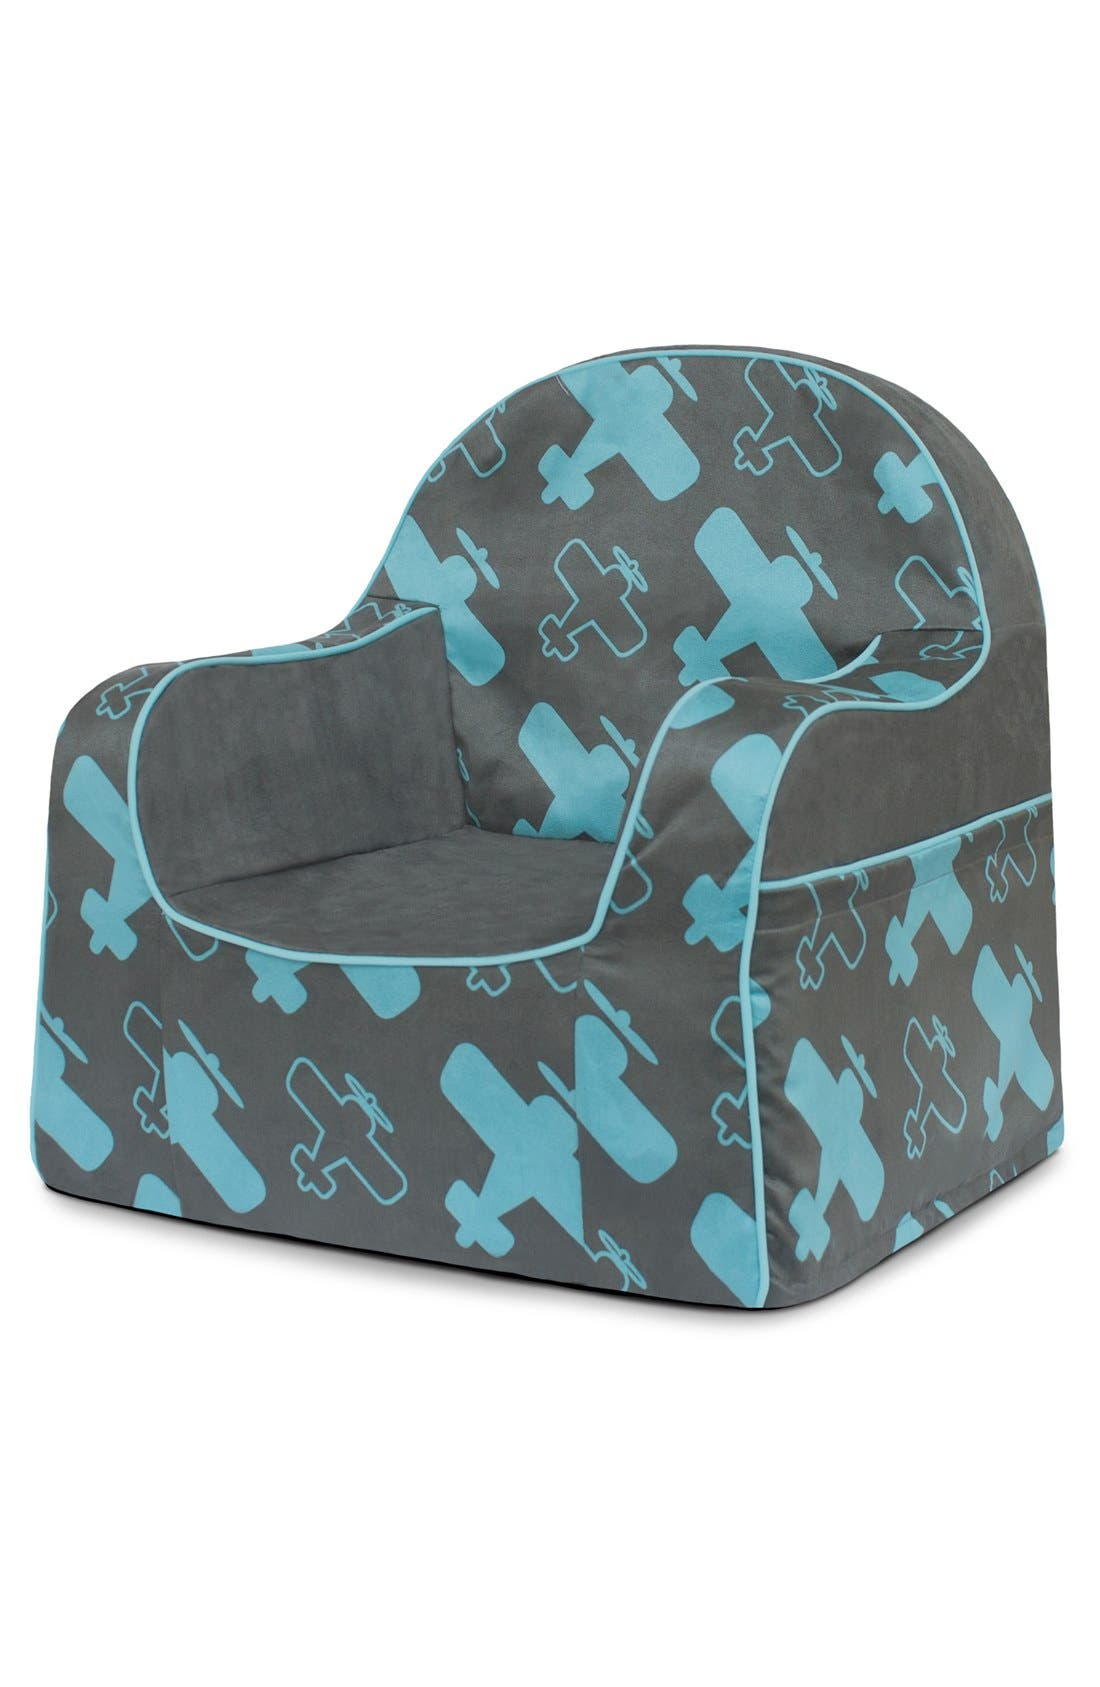 'Personalized Little Reader' Chair,                             Alternate thumbnail 5, color,                             400